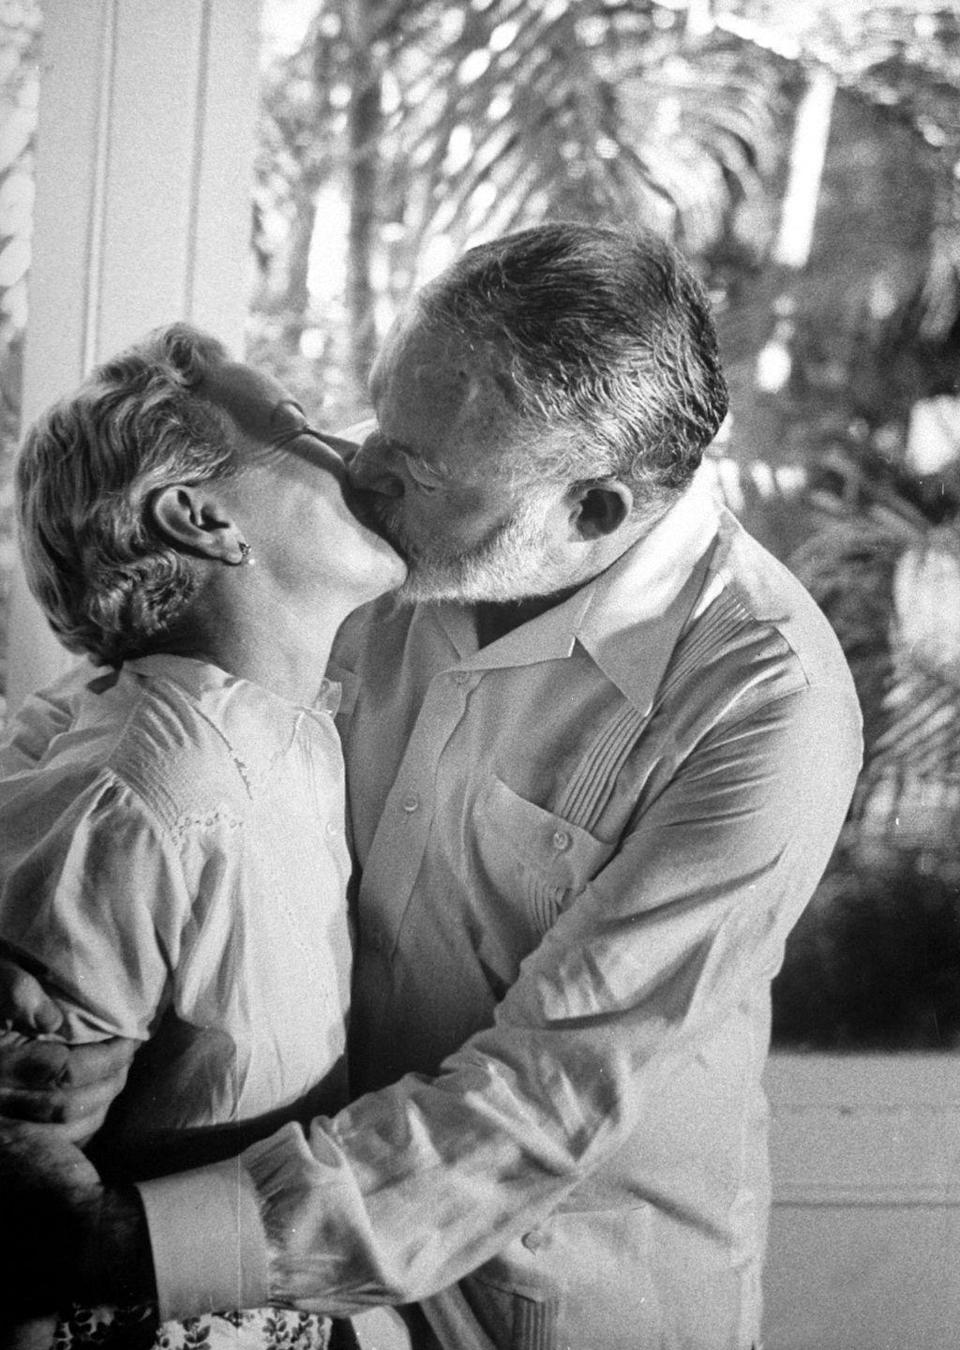 """<p>Hemingway's fourth marriage to wife, Mary, was his <a href=""""https://www.biography.com/news/ernest-hemingway-wives"""" rel=""""nofollow noopener"""" target=""""_blank"""" data-ylk=""""slk:longest union"""" class=""""link rapid-noclick-resp"""">longest union</a>. They were married for nearly 15 years until his death. </p>"""